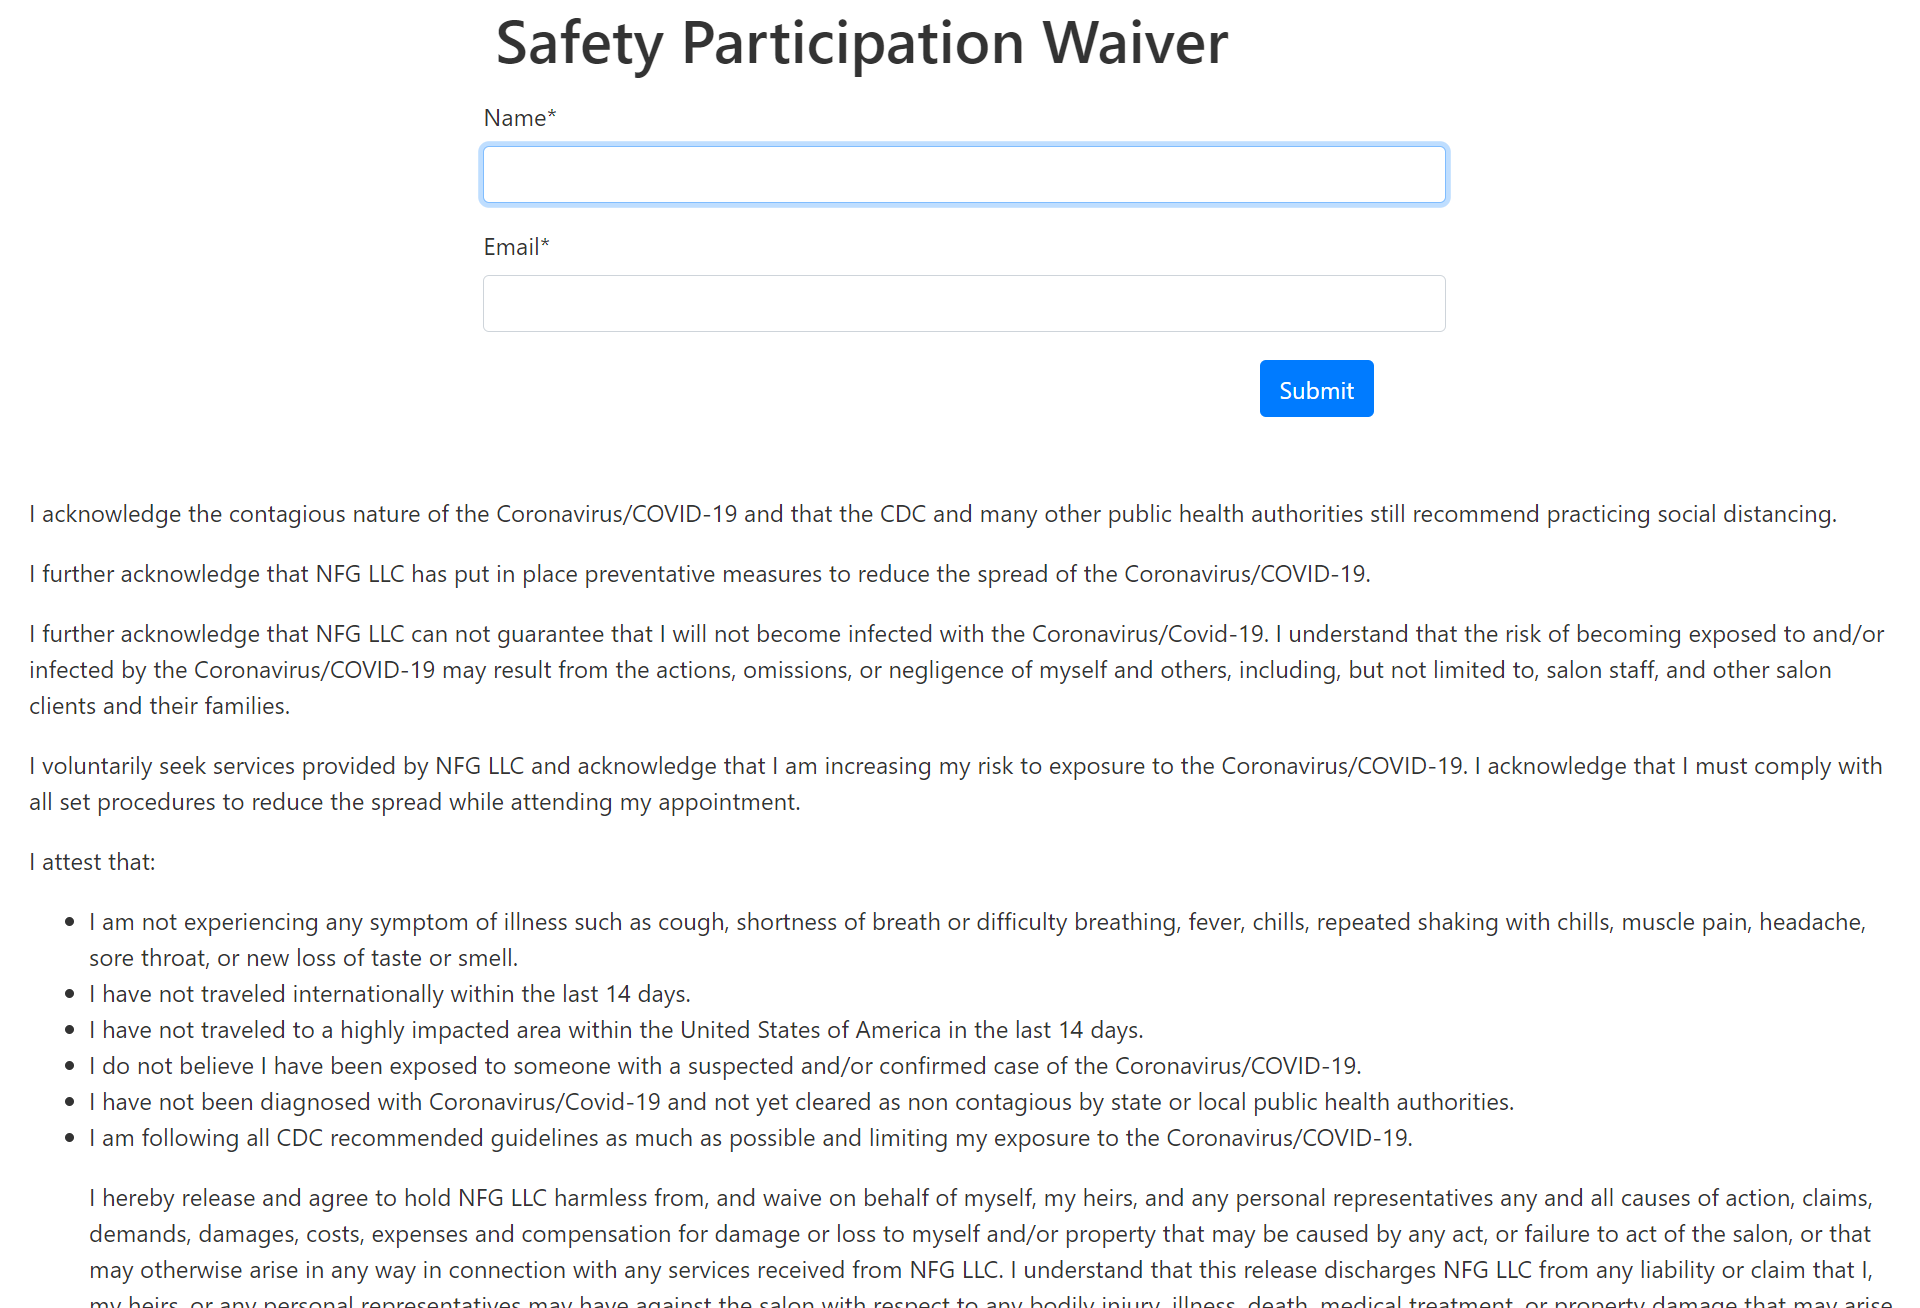 Example Covid Participation Waiver